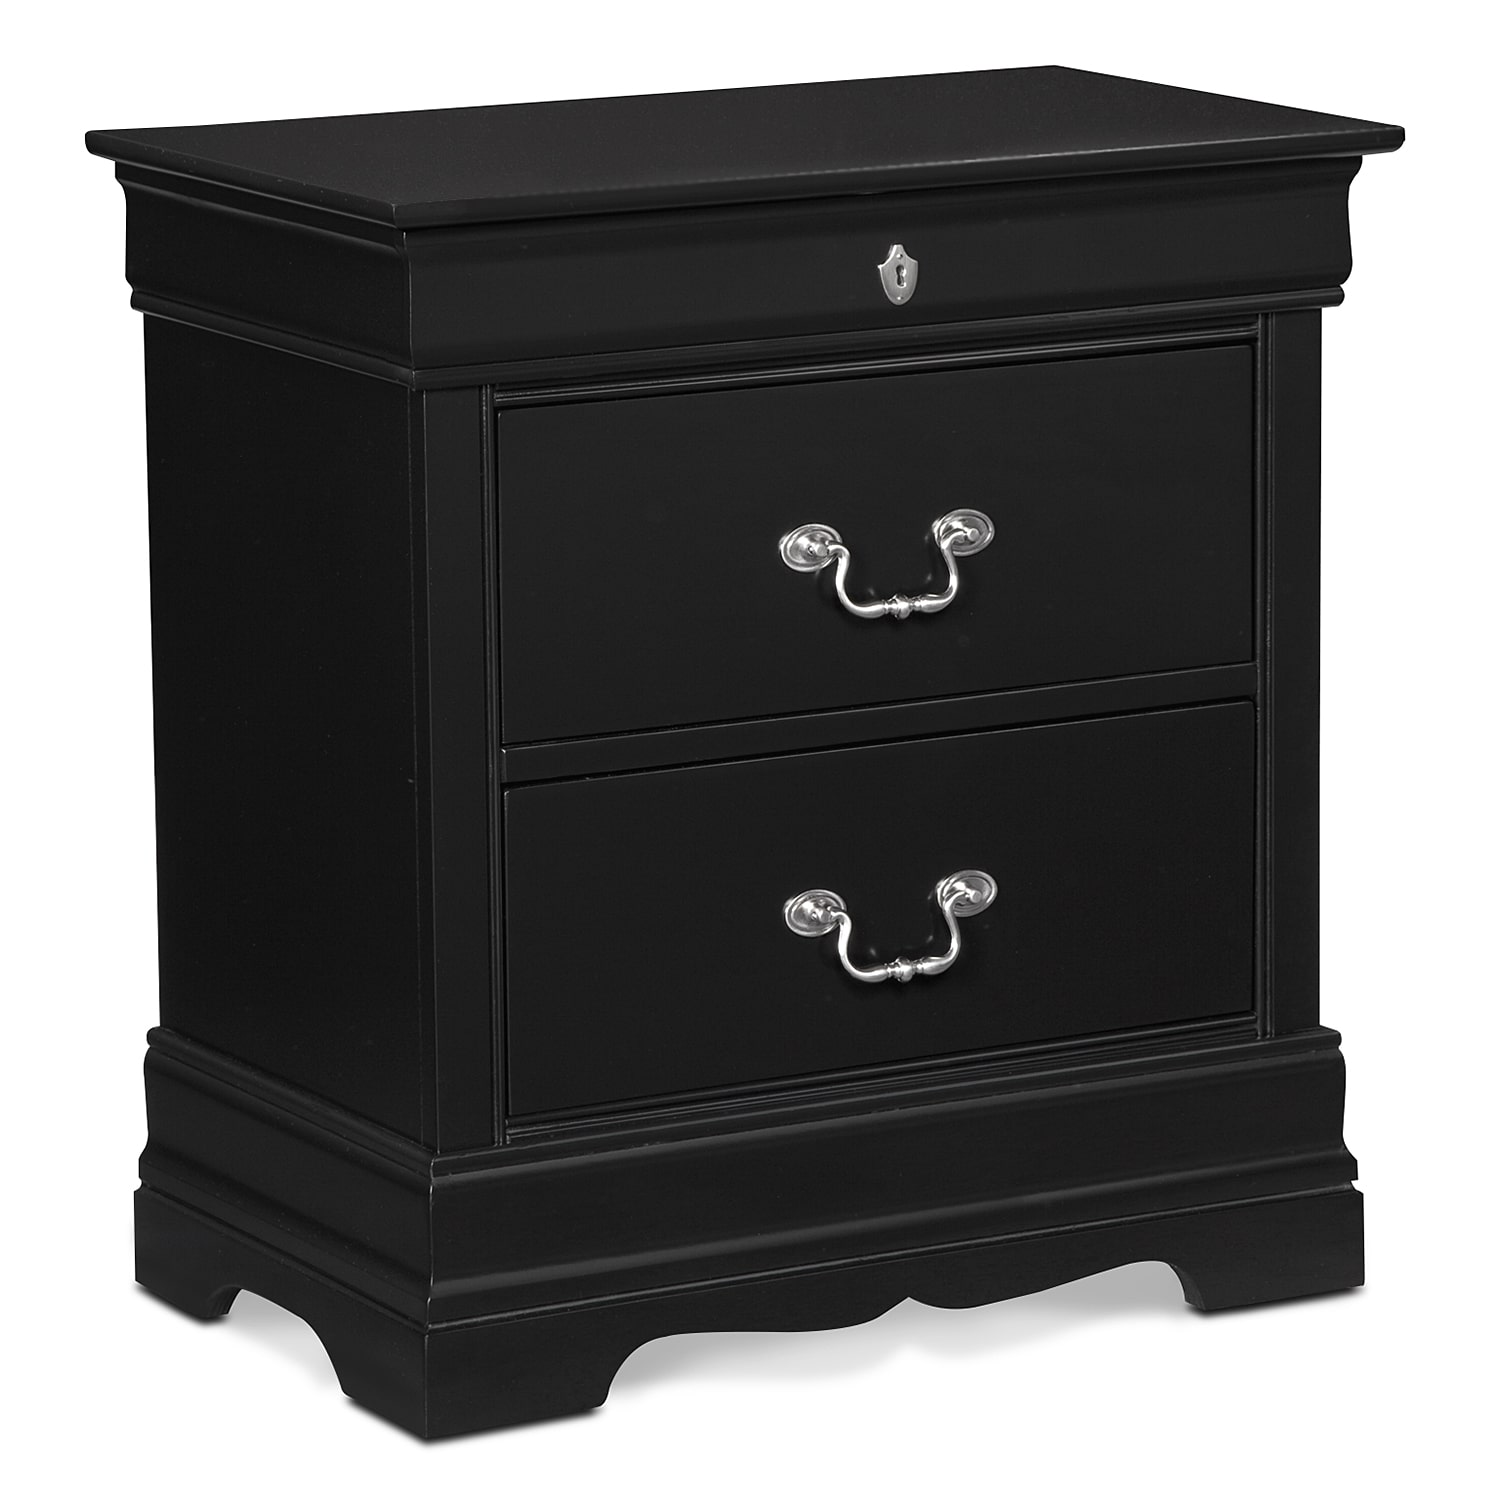 Neo Classic Black Nightstand Value City Furniture